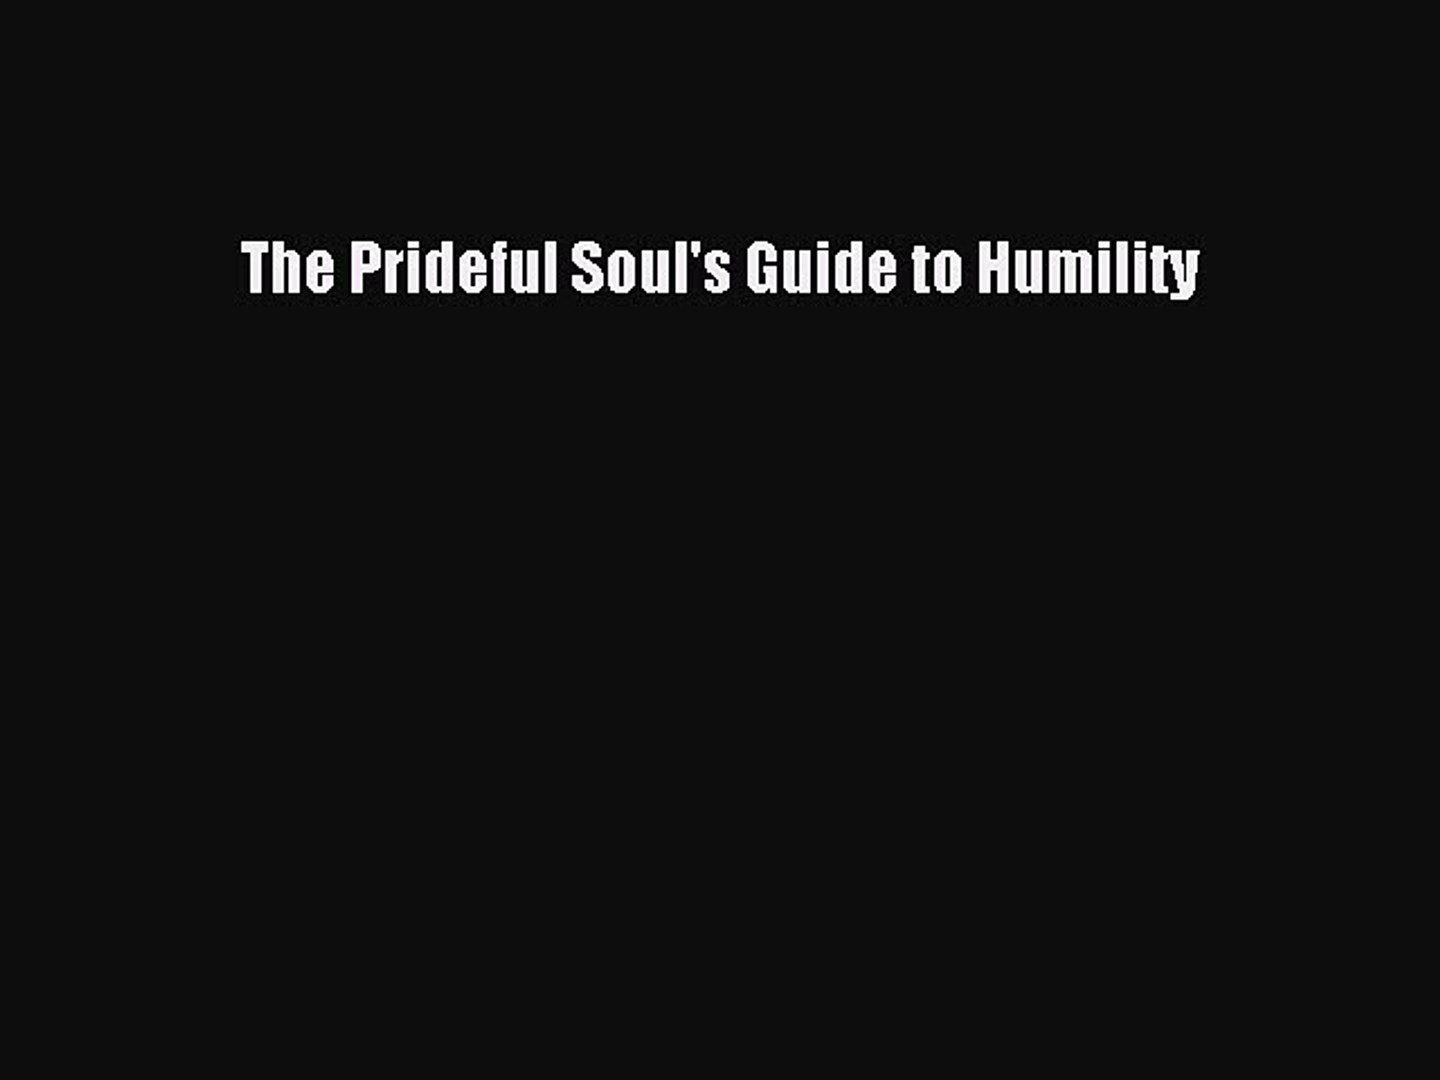 The prideful souls guide to humility